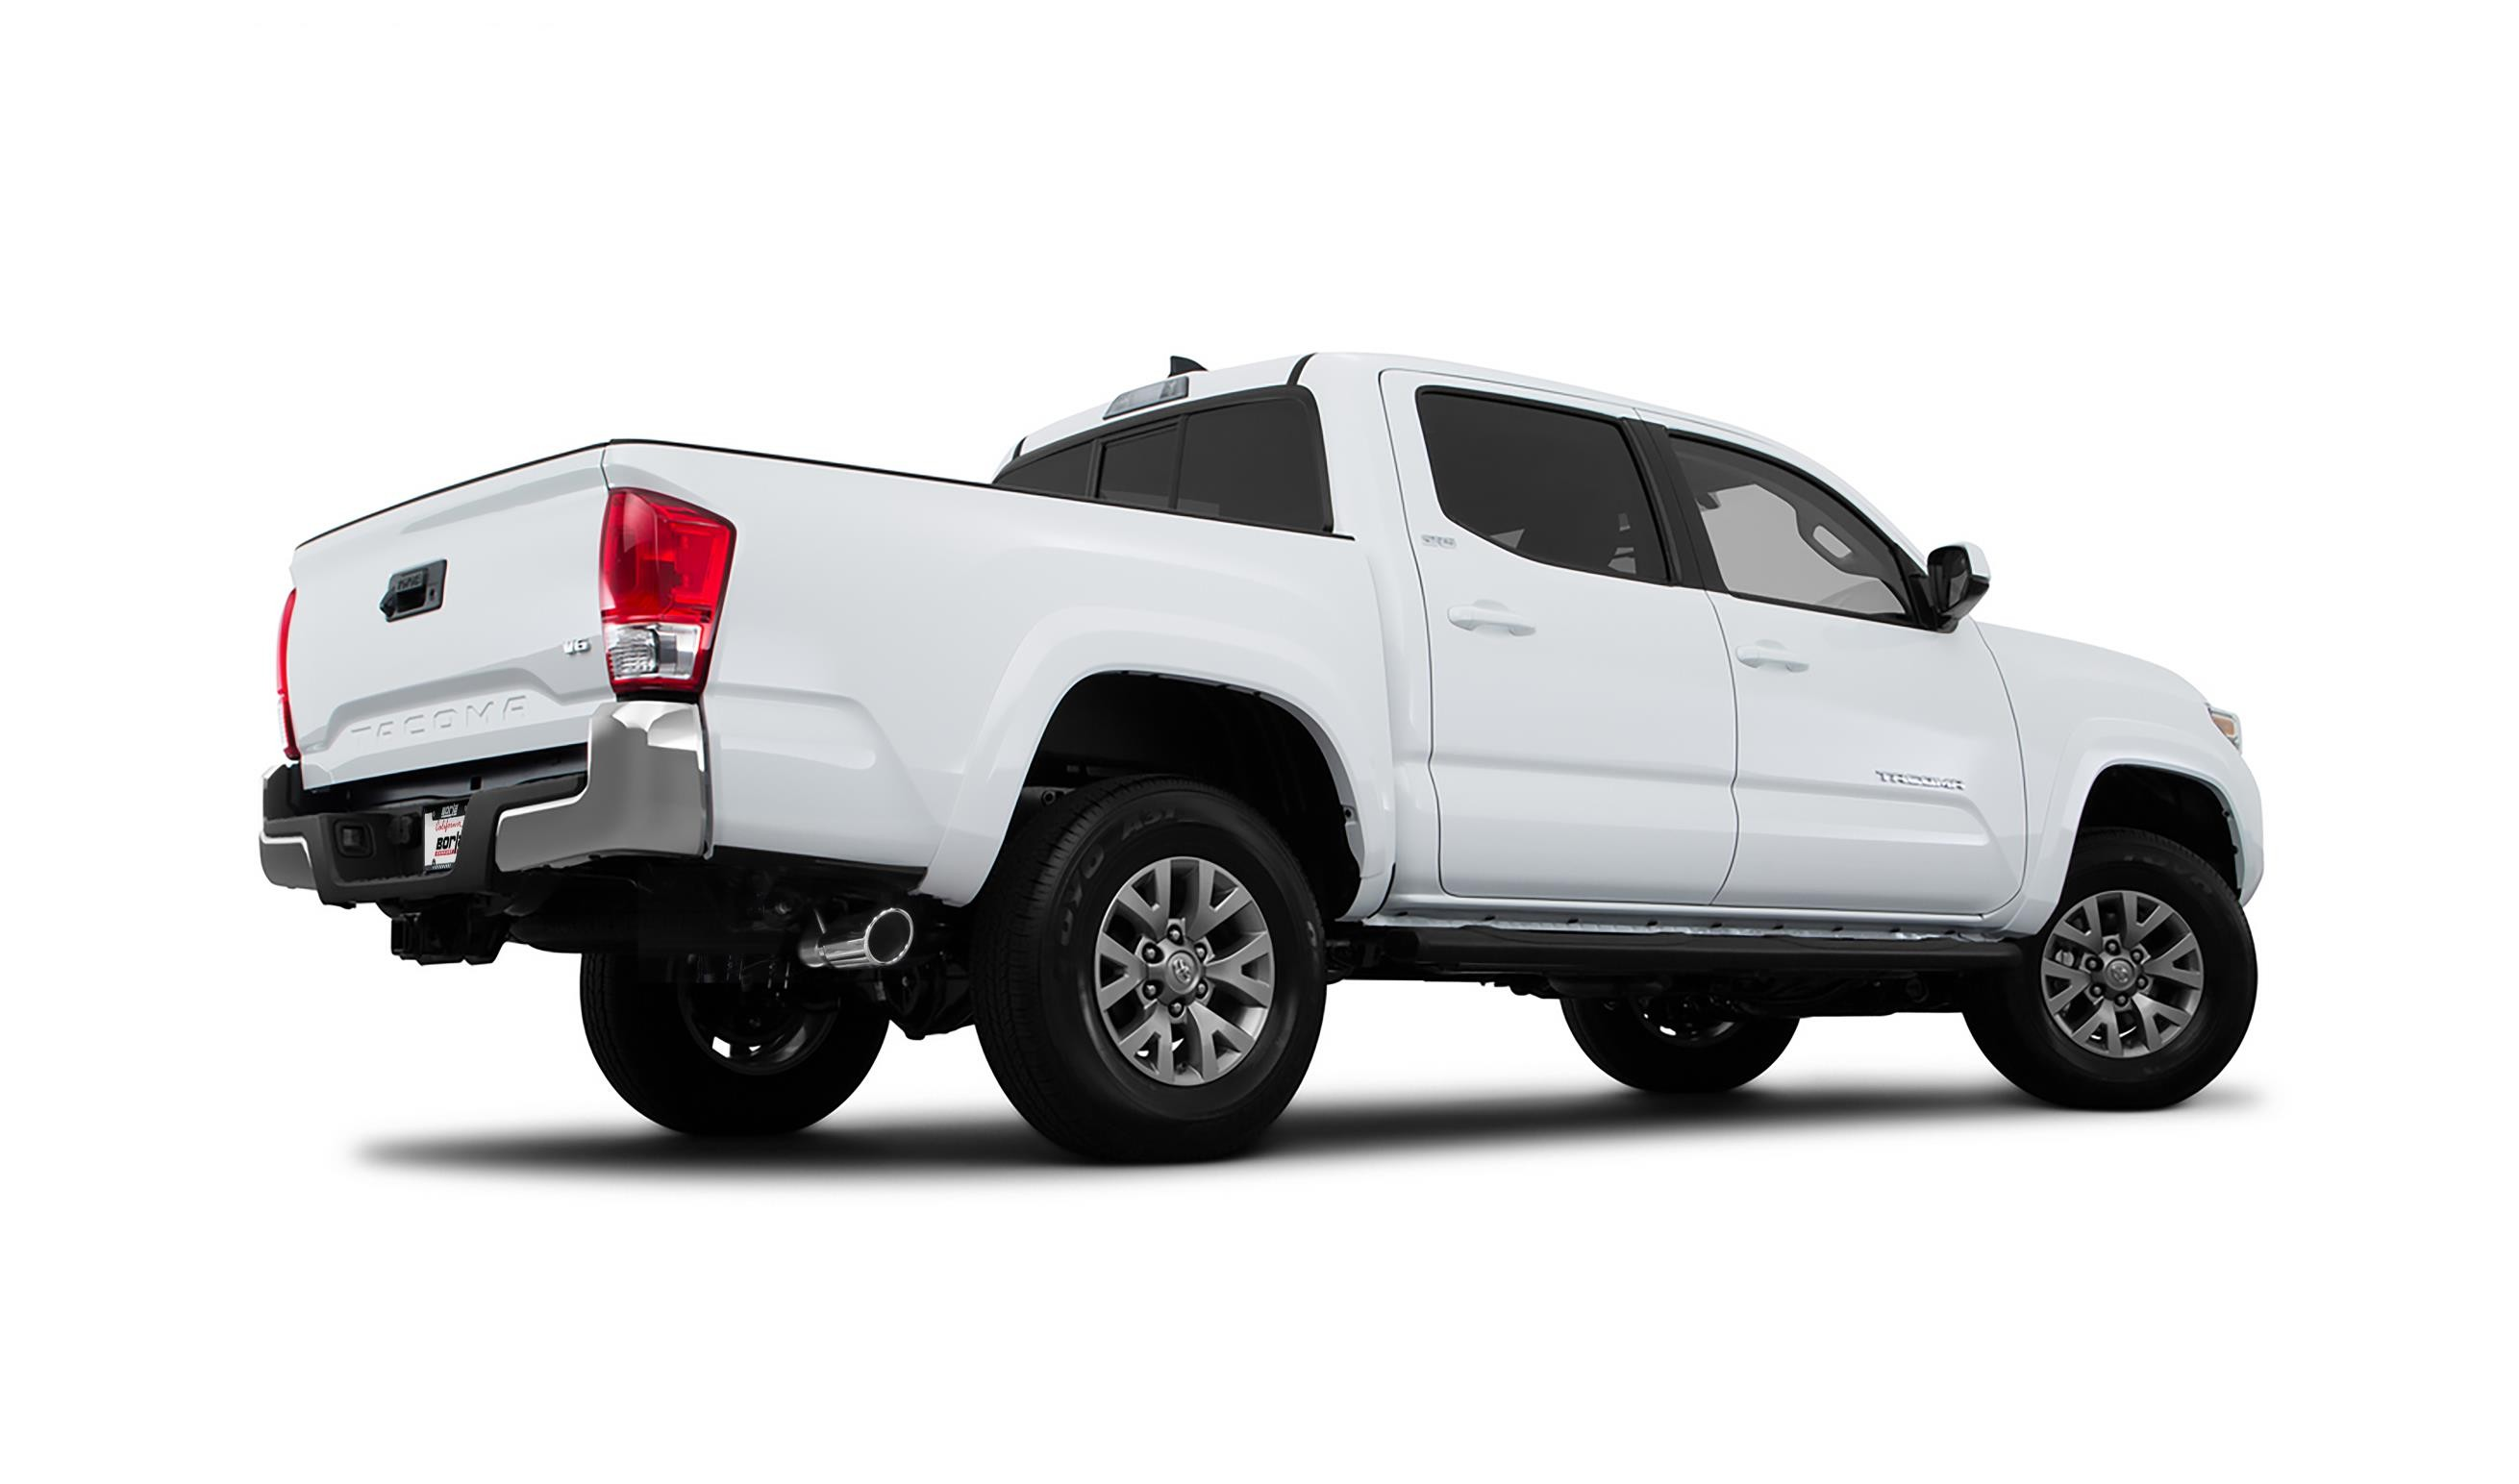 borla exhaust system for toyota tacoma 3 5 v6 priced at. Black Bedroom Furniture Sets. Home Design Ideas